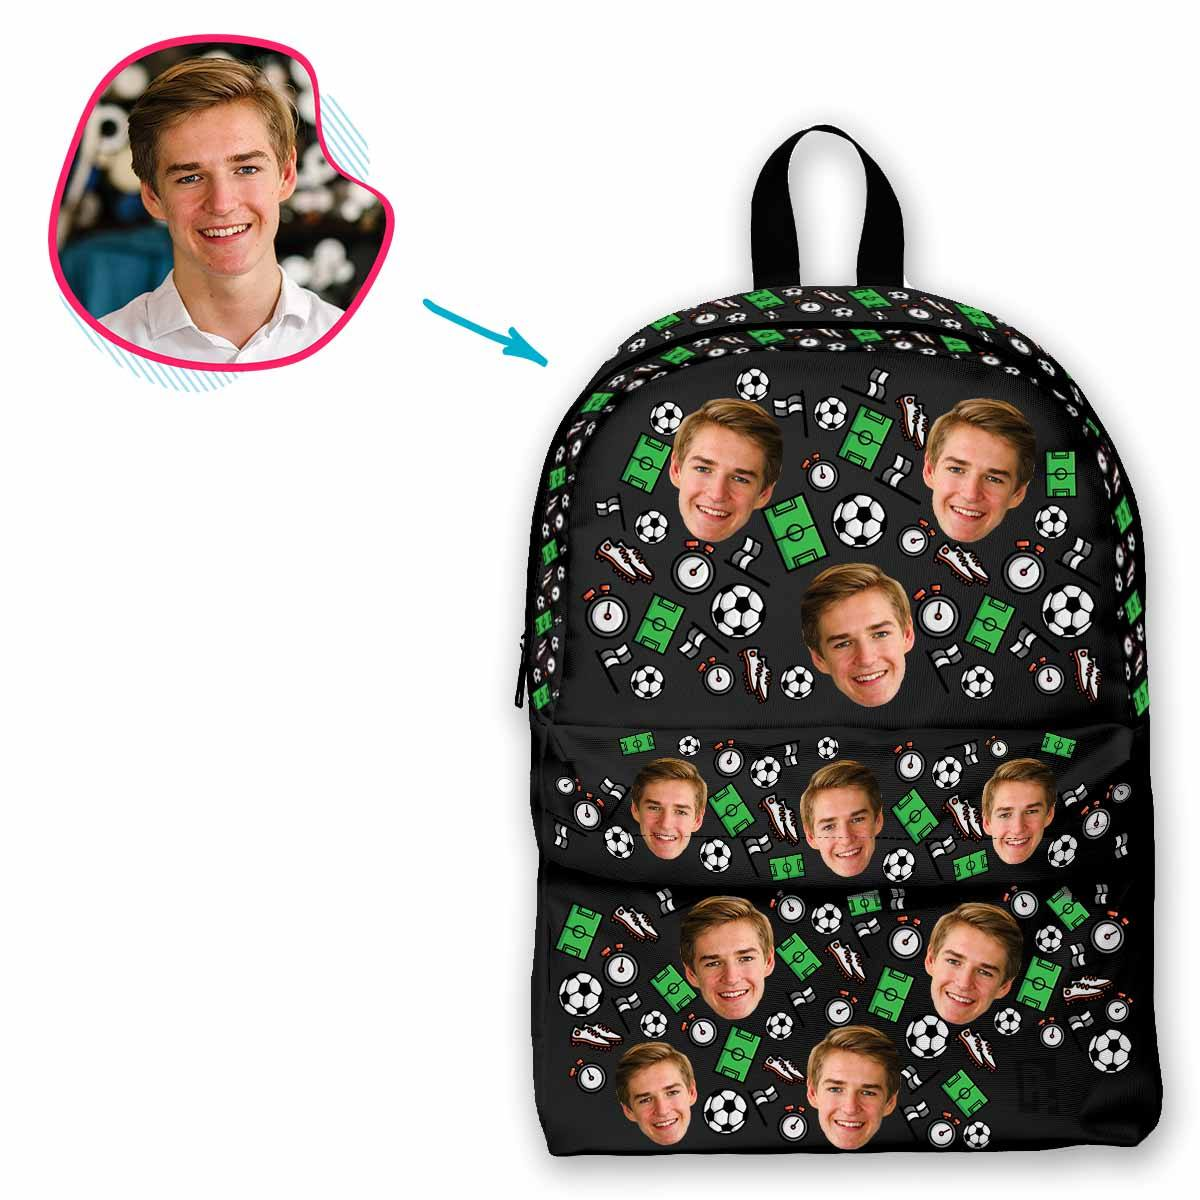 dark Football classic backpack personalized with photo of face printed on it